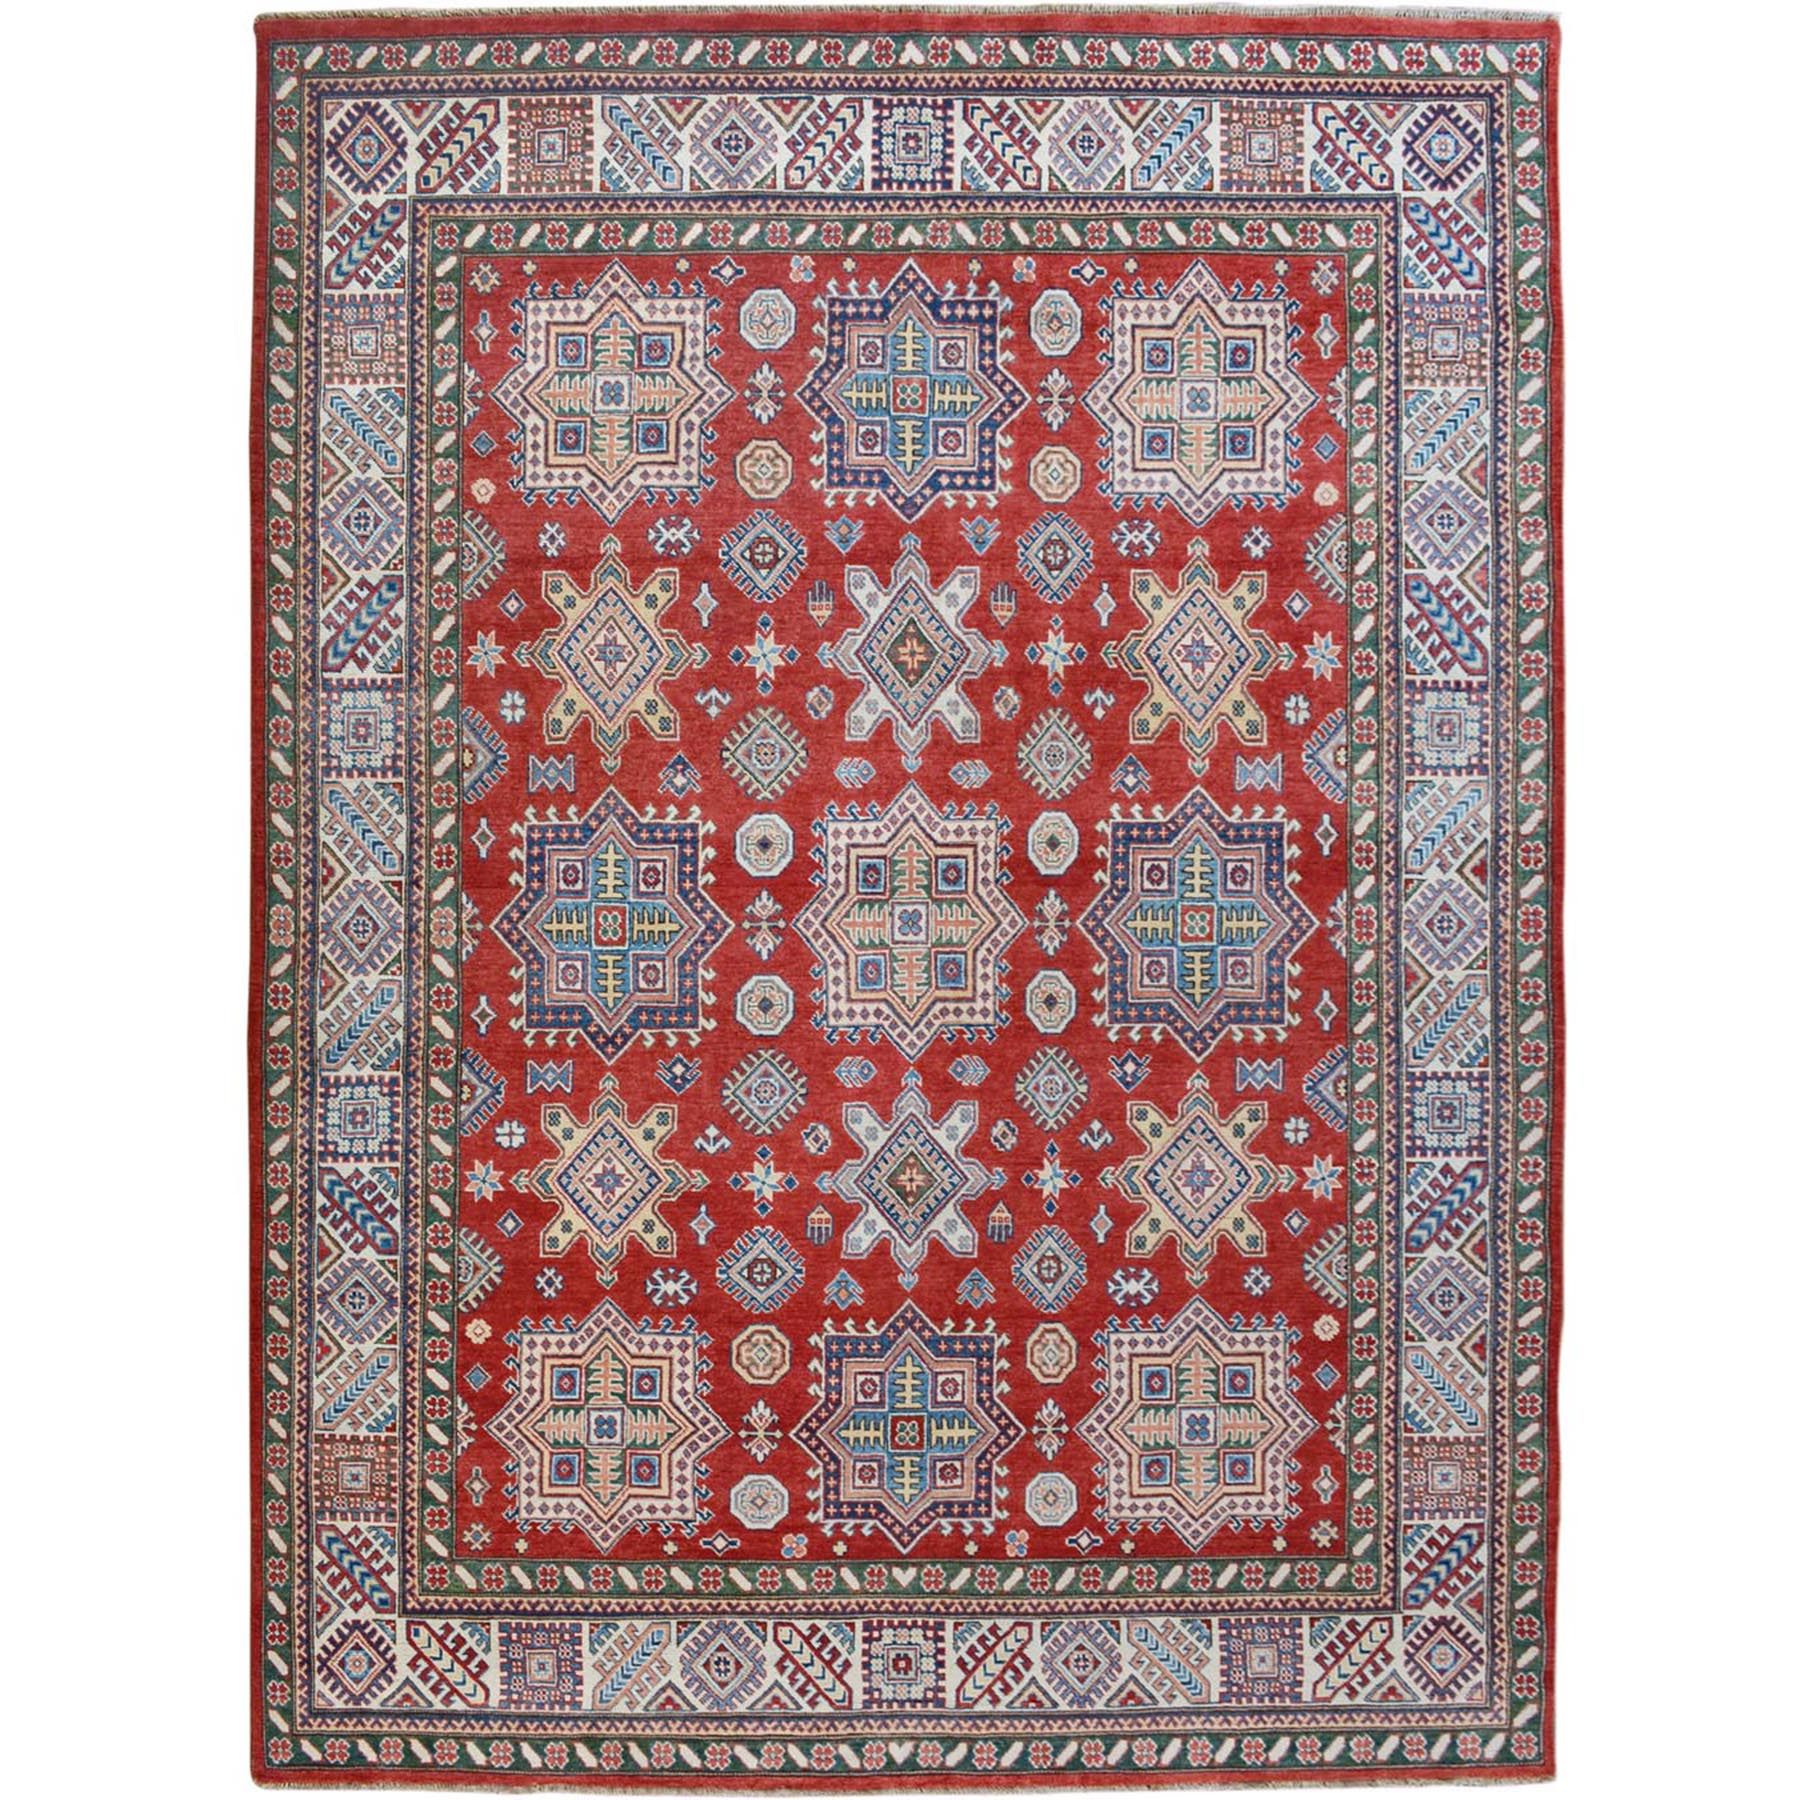 8'X10' Red Special Kazak Tribal Design Pure Wool Hand Knotted Oriental Rug moae70cd